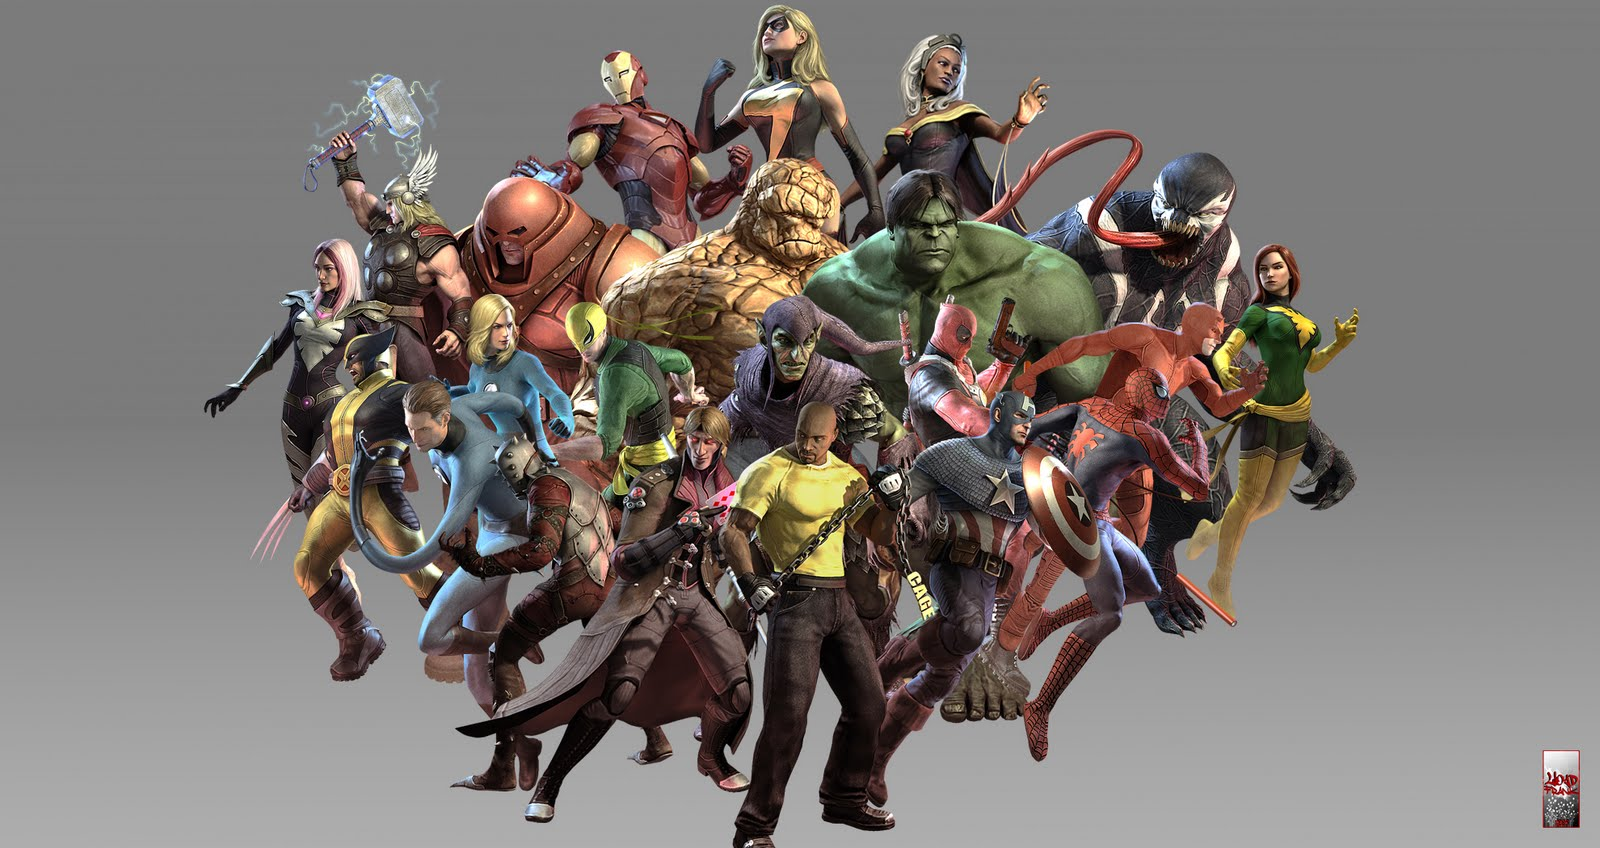 Interesting. marvel ultimate alliance characters